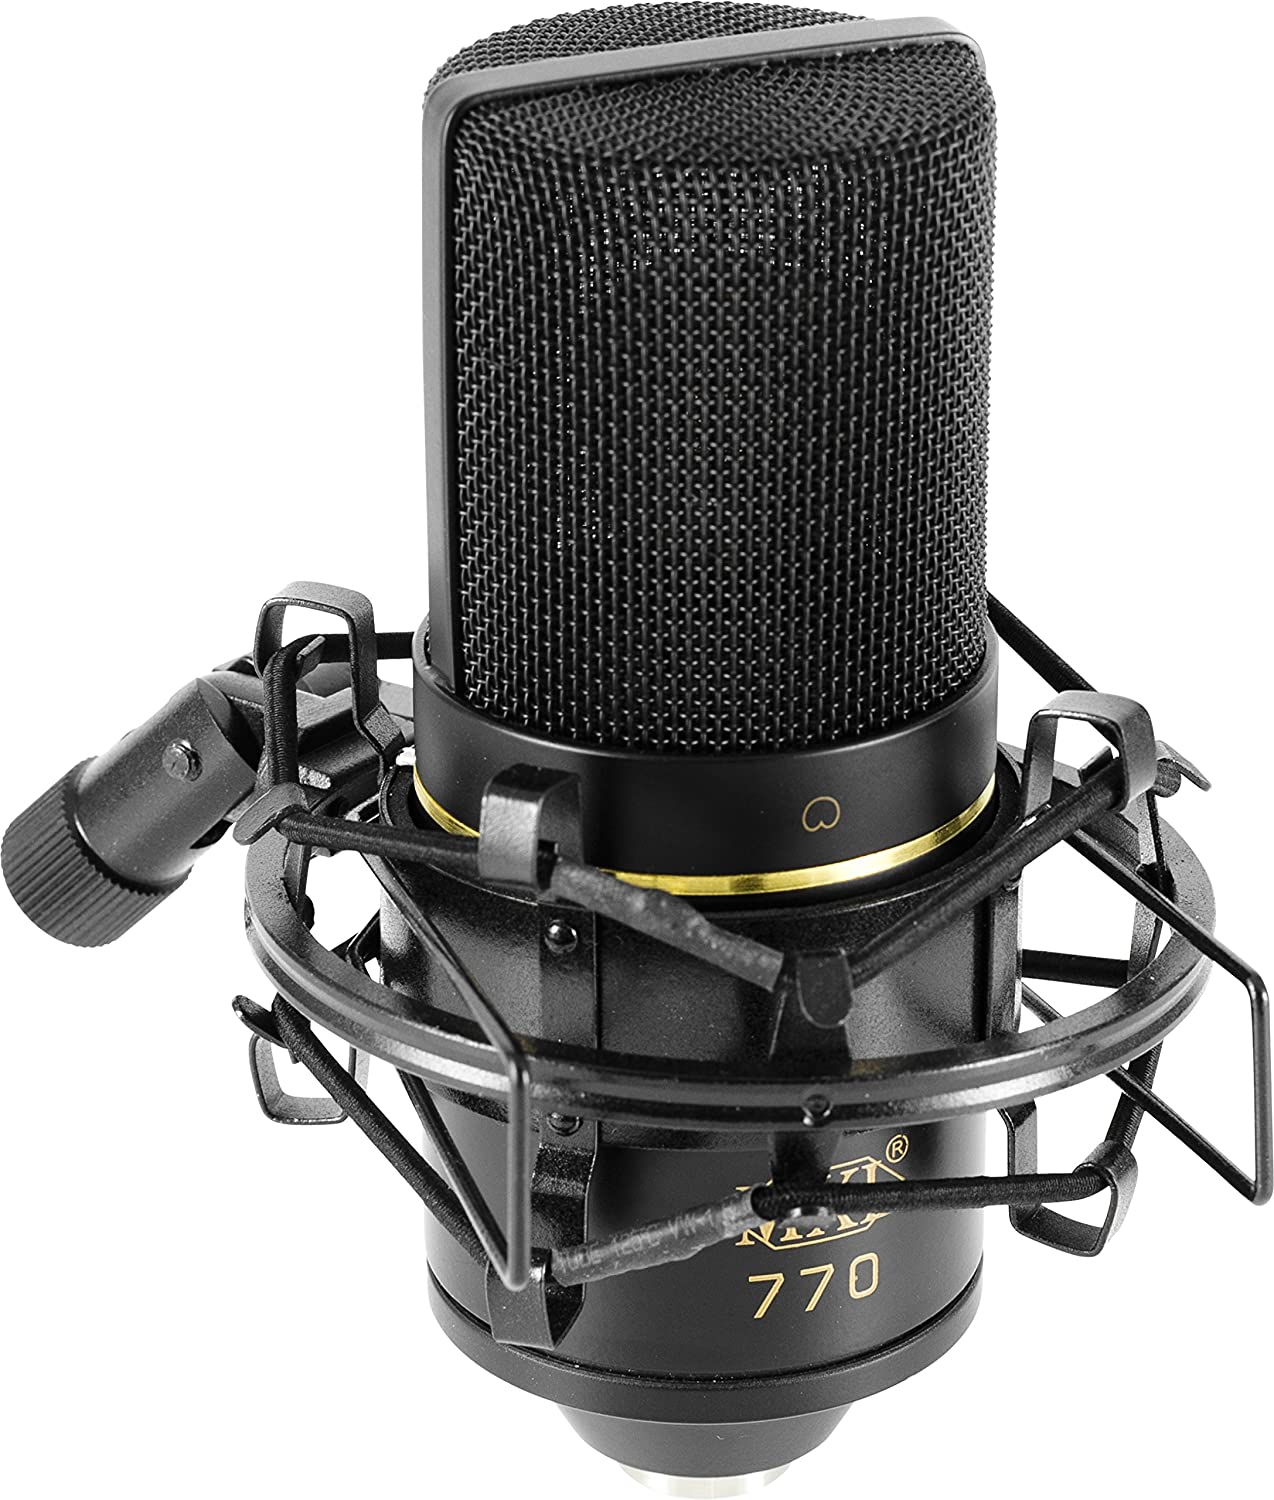 Top 10 Best Chinese Microphones Reviews in 2020 8